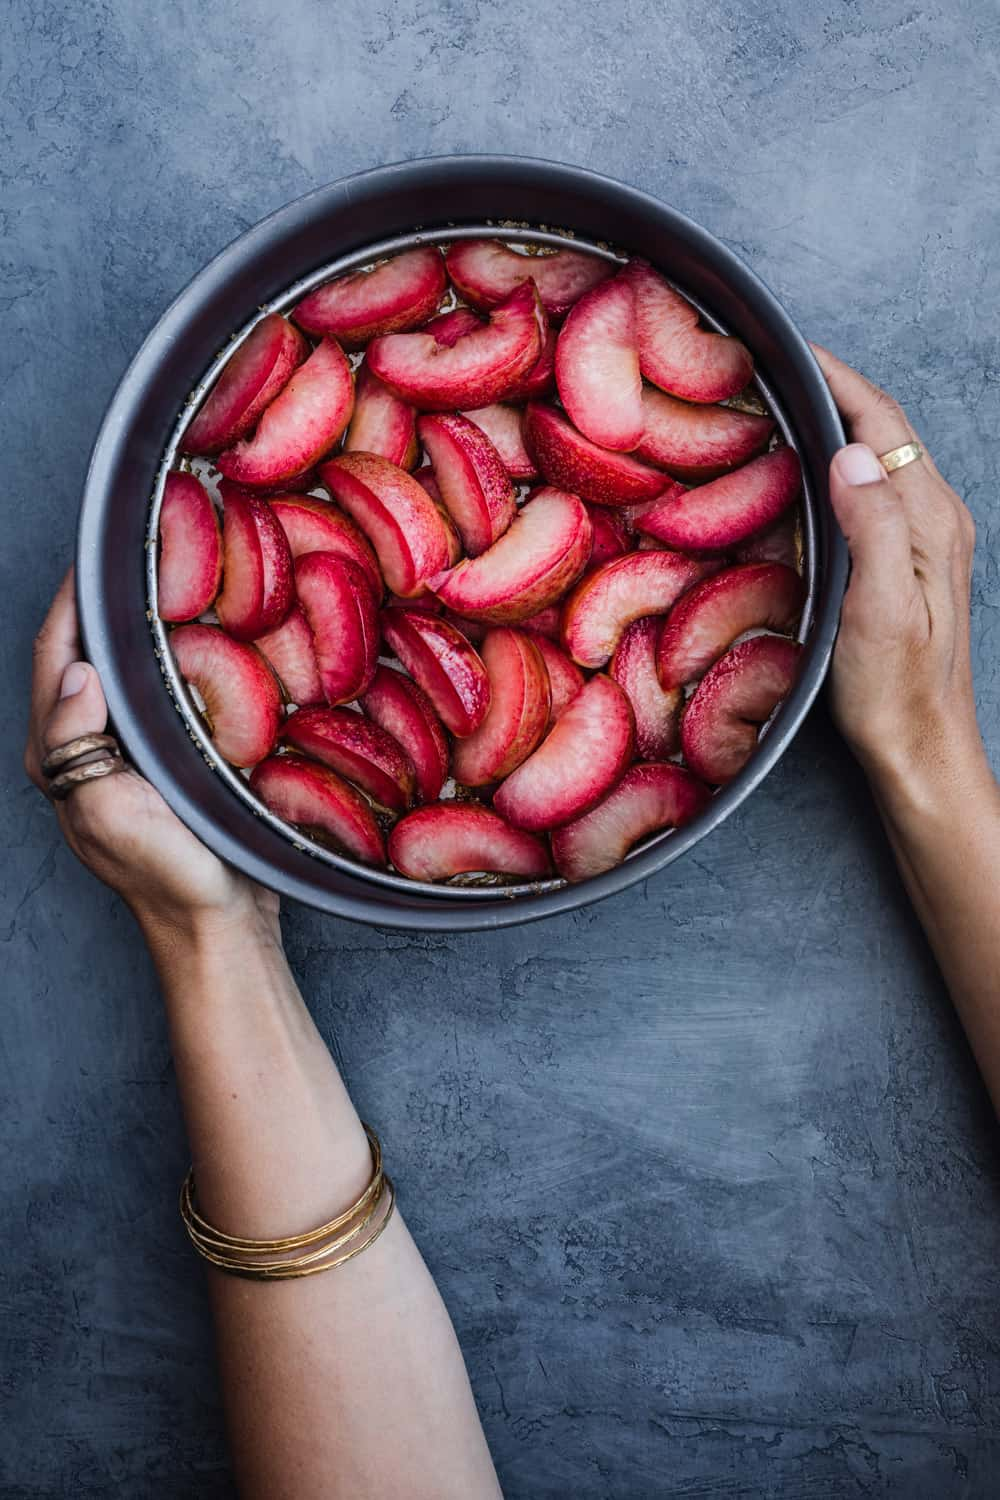 Chef Daniela Gerson holding the cake pan with the plum slices arranged in it.